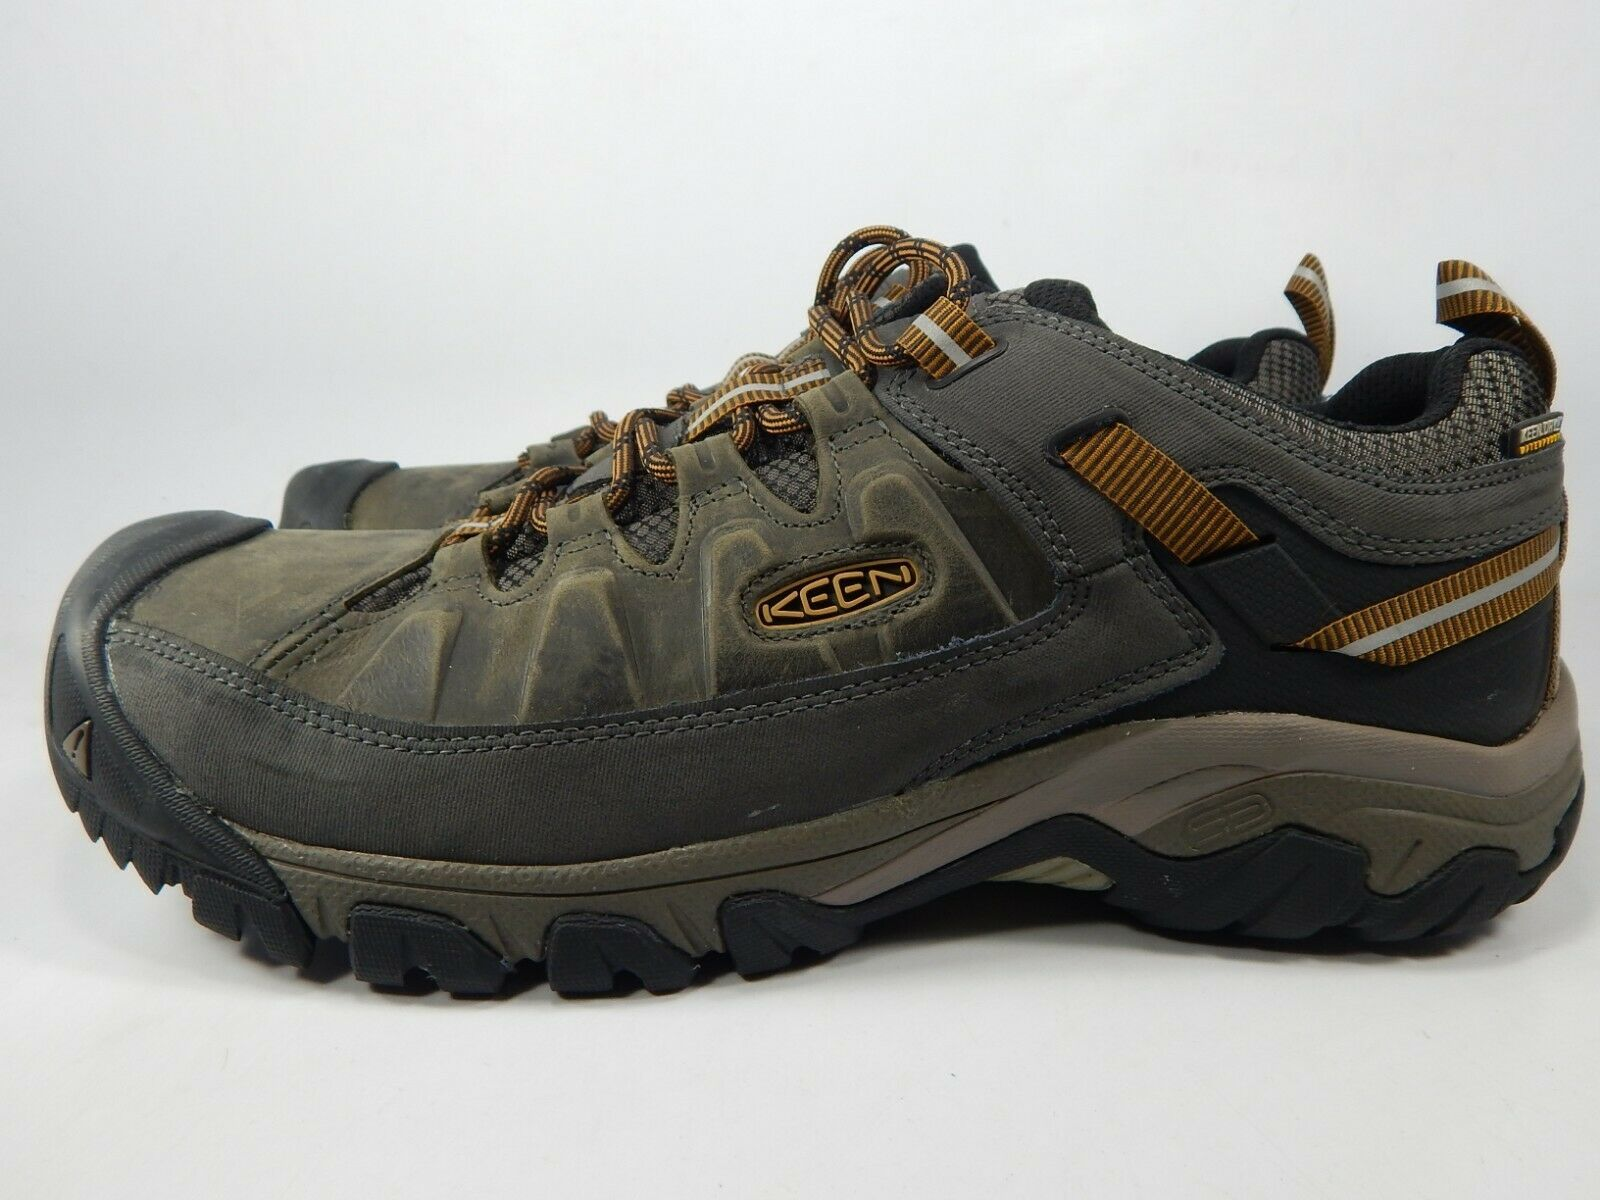 Keen Targhee III Low Top Size 13 M (D) EU 47 Men's WP Trail Hiking Shoes 1017784